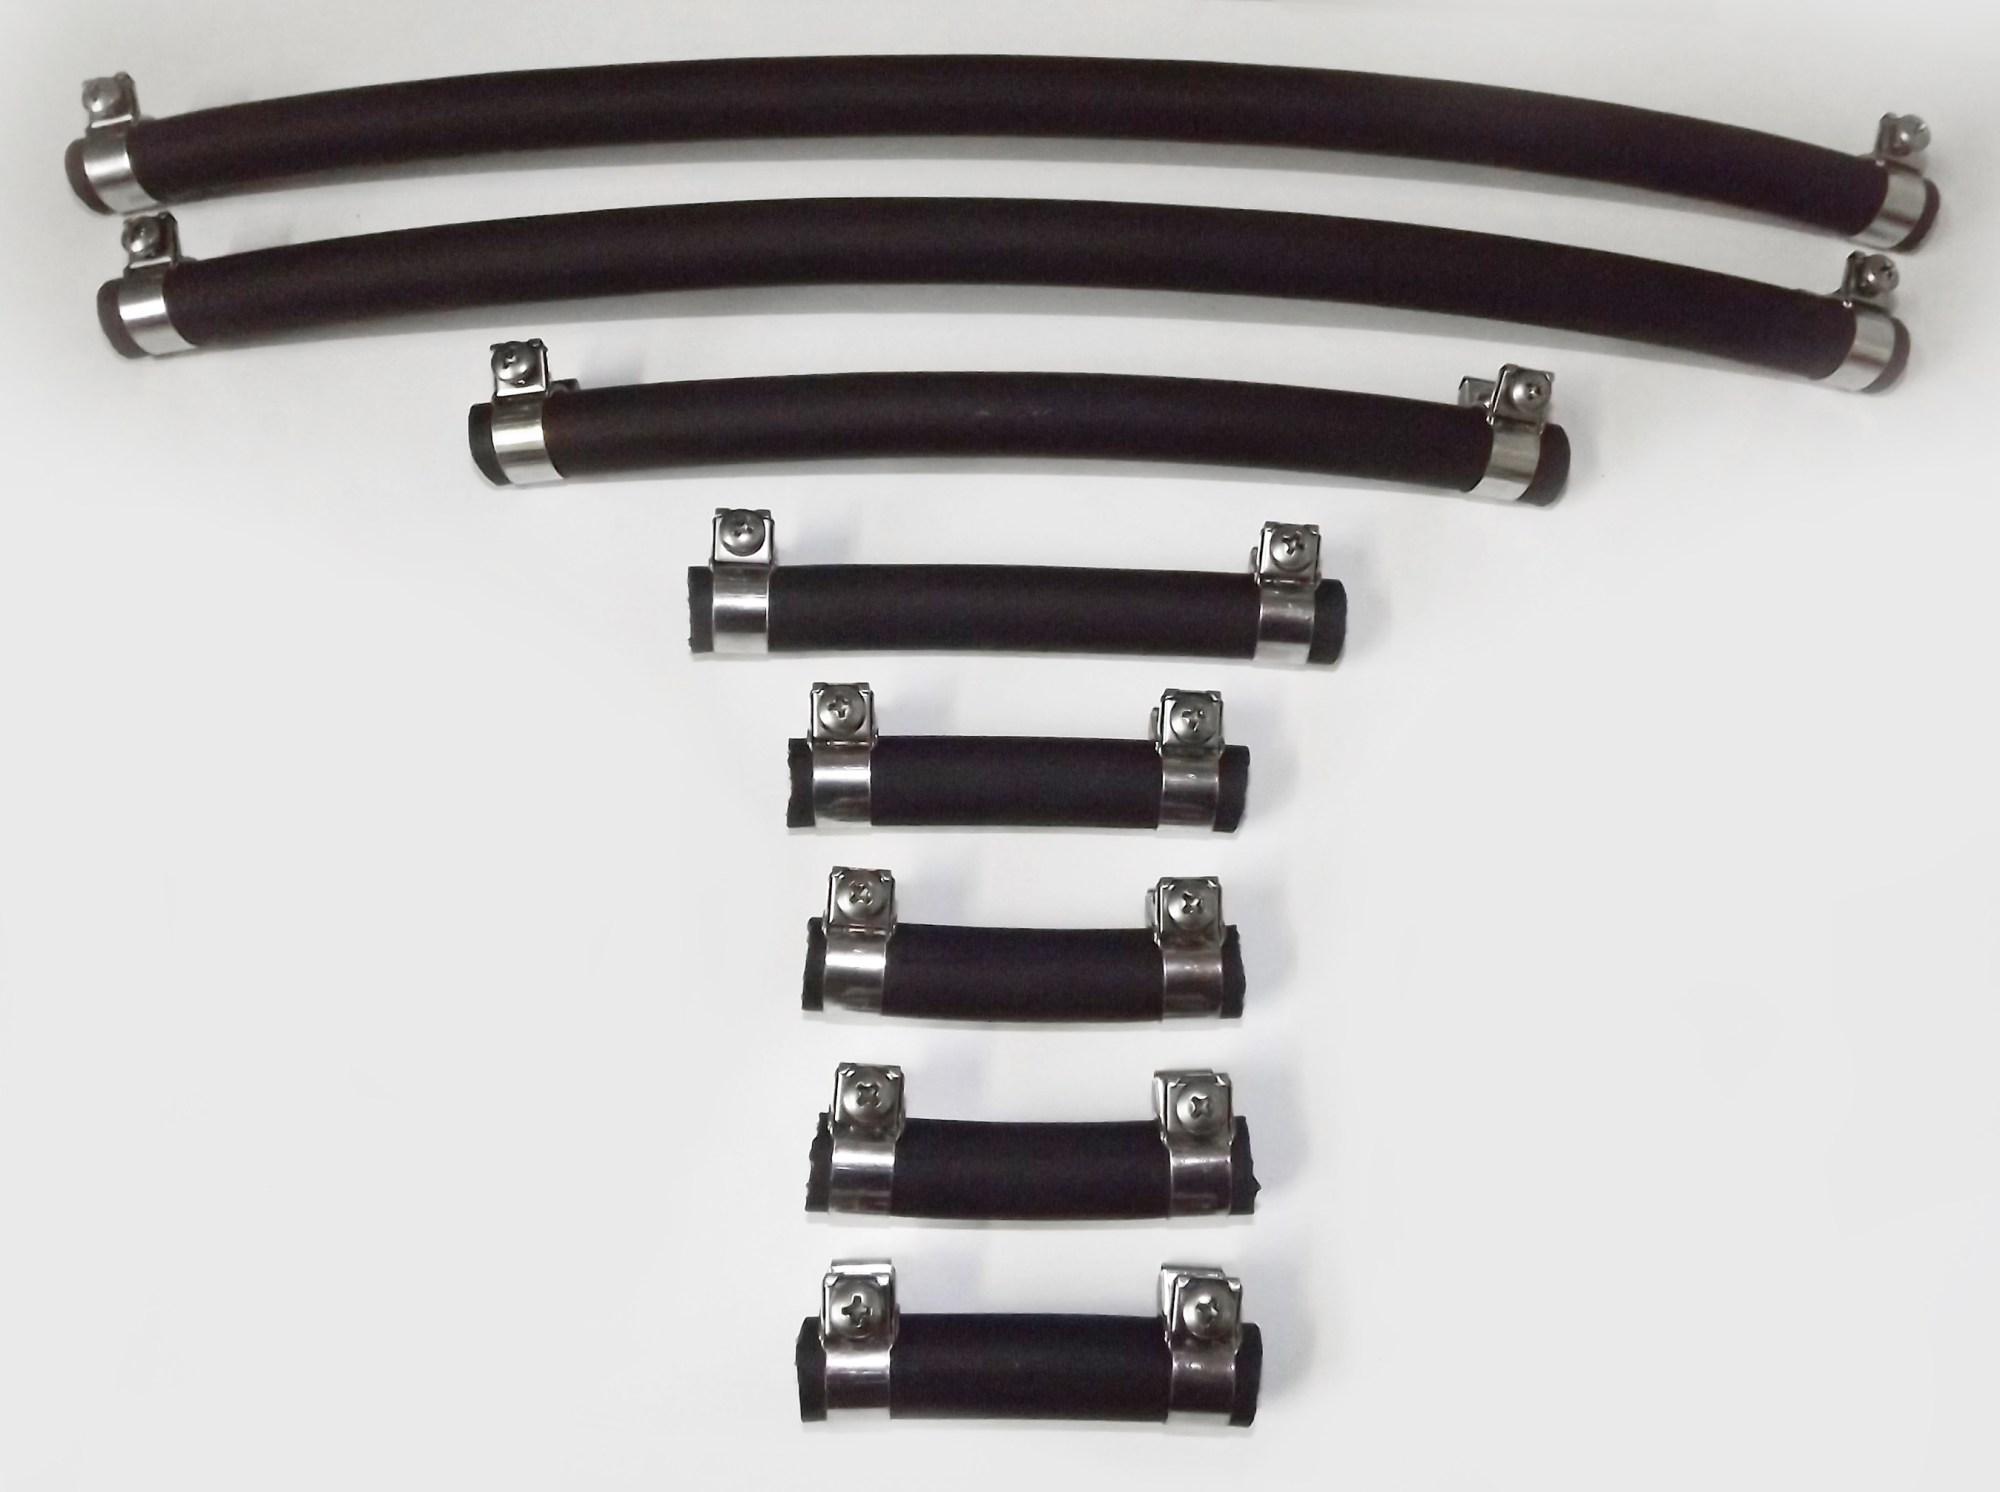 hight resolution of the 300zx fuel line kit includes 8 sections of high quality reinforced high pressure fuel injection hose cut to length these 8 hoses will replace all the